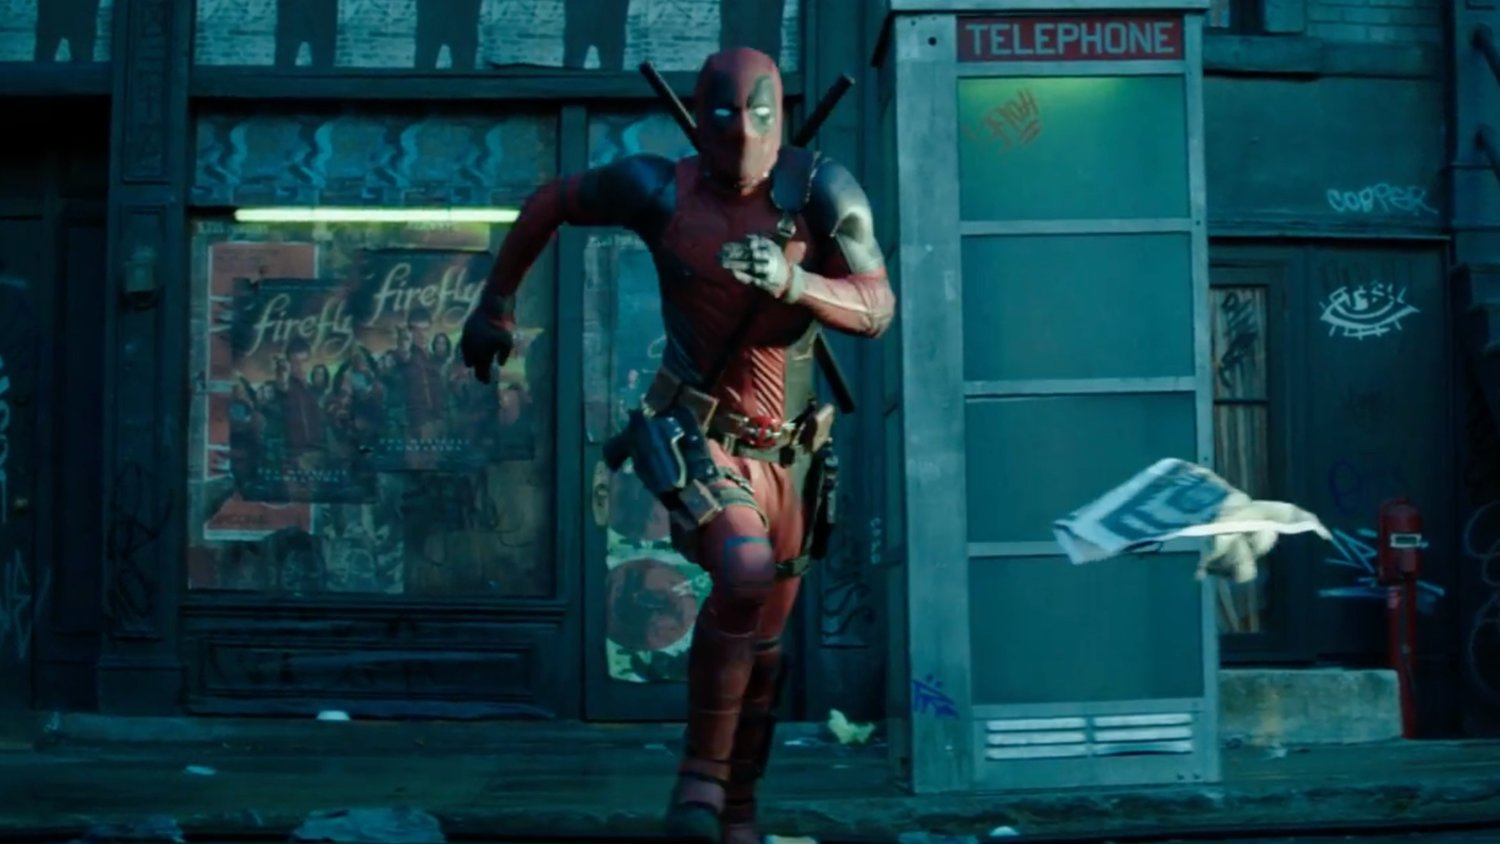 Watch The Hilarious Deadpool Short Film No Good Deed That Plays